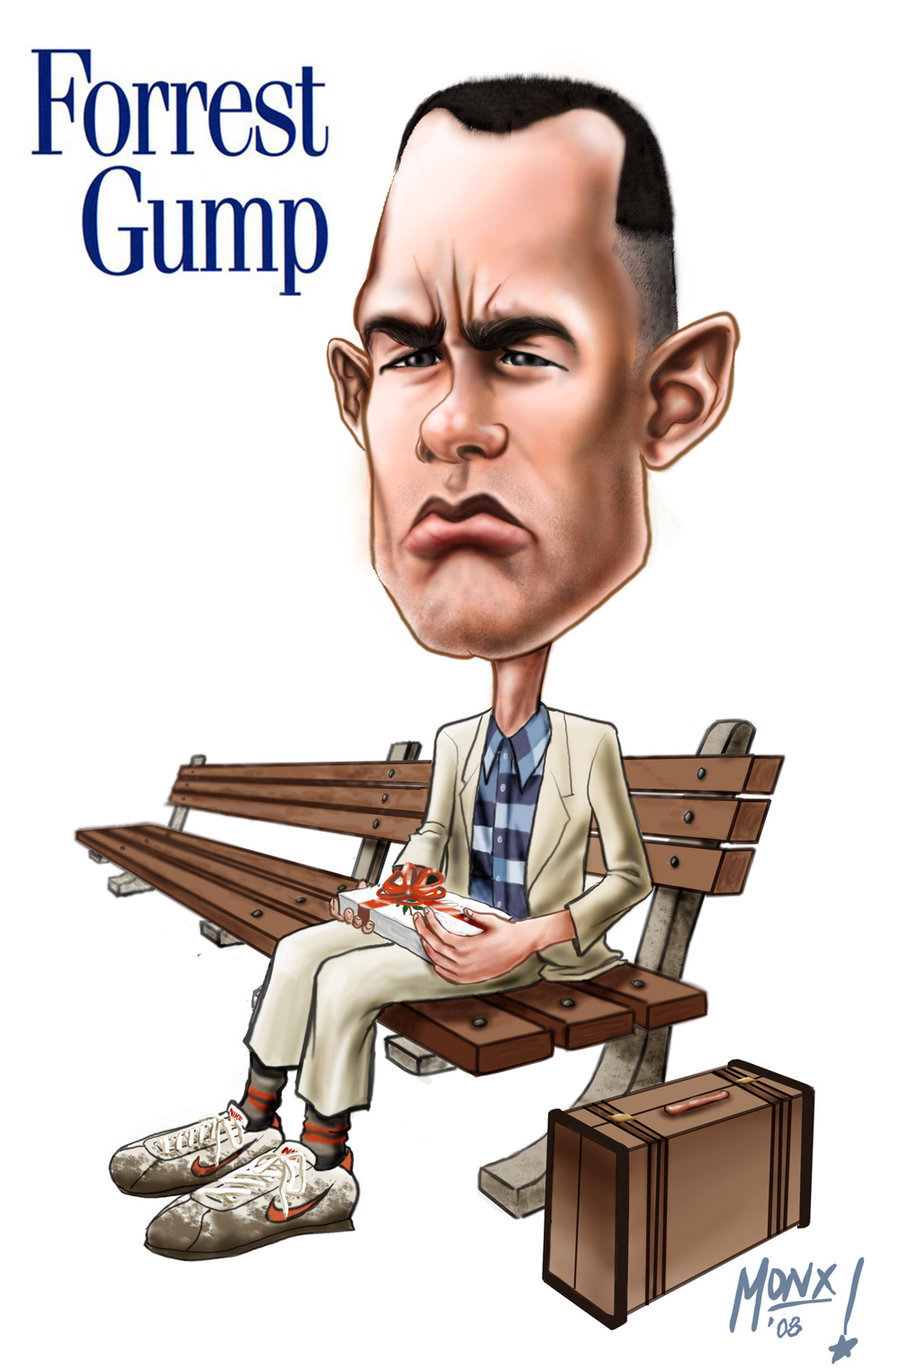 Forrest Gump by monx.